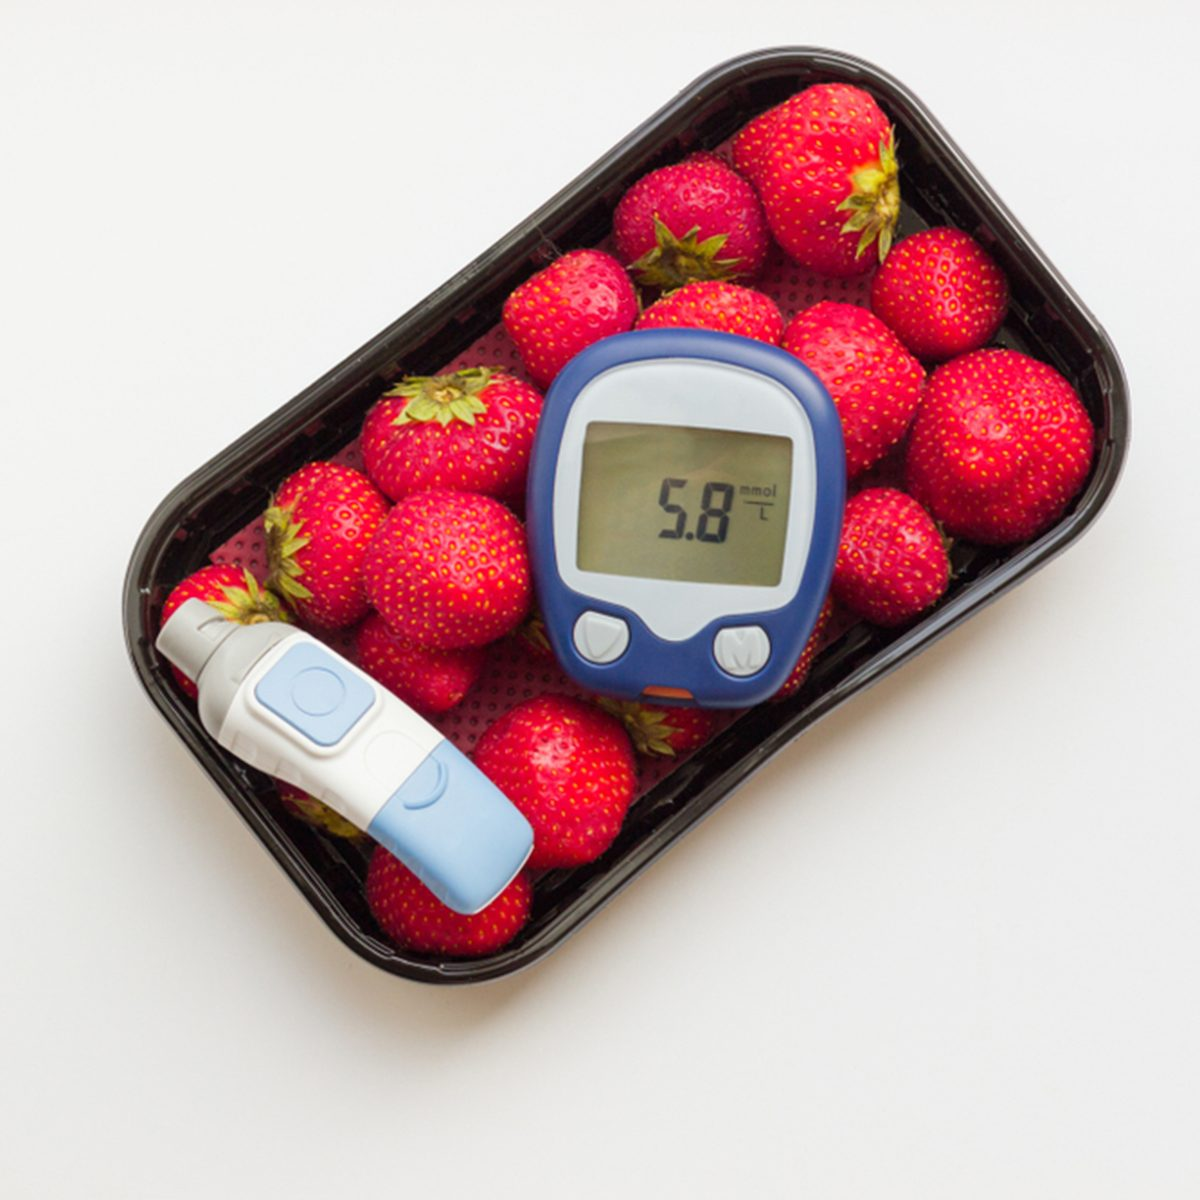 the meter shows normal sugar levels 5,8 mmol/l on background of strawberry.